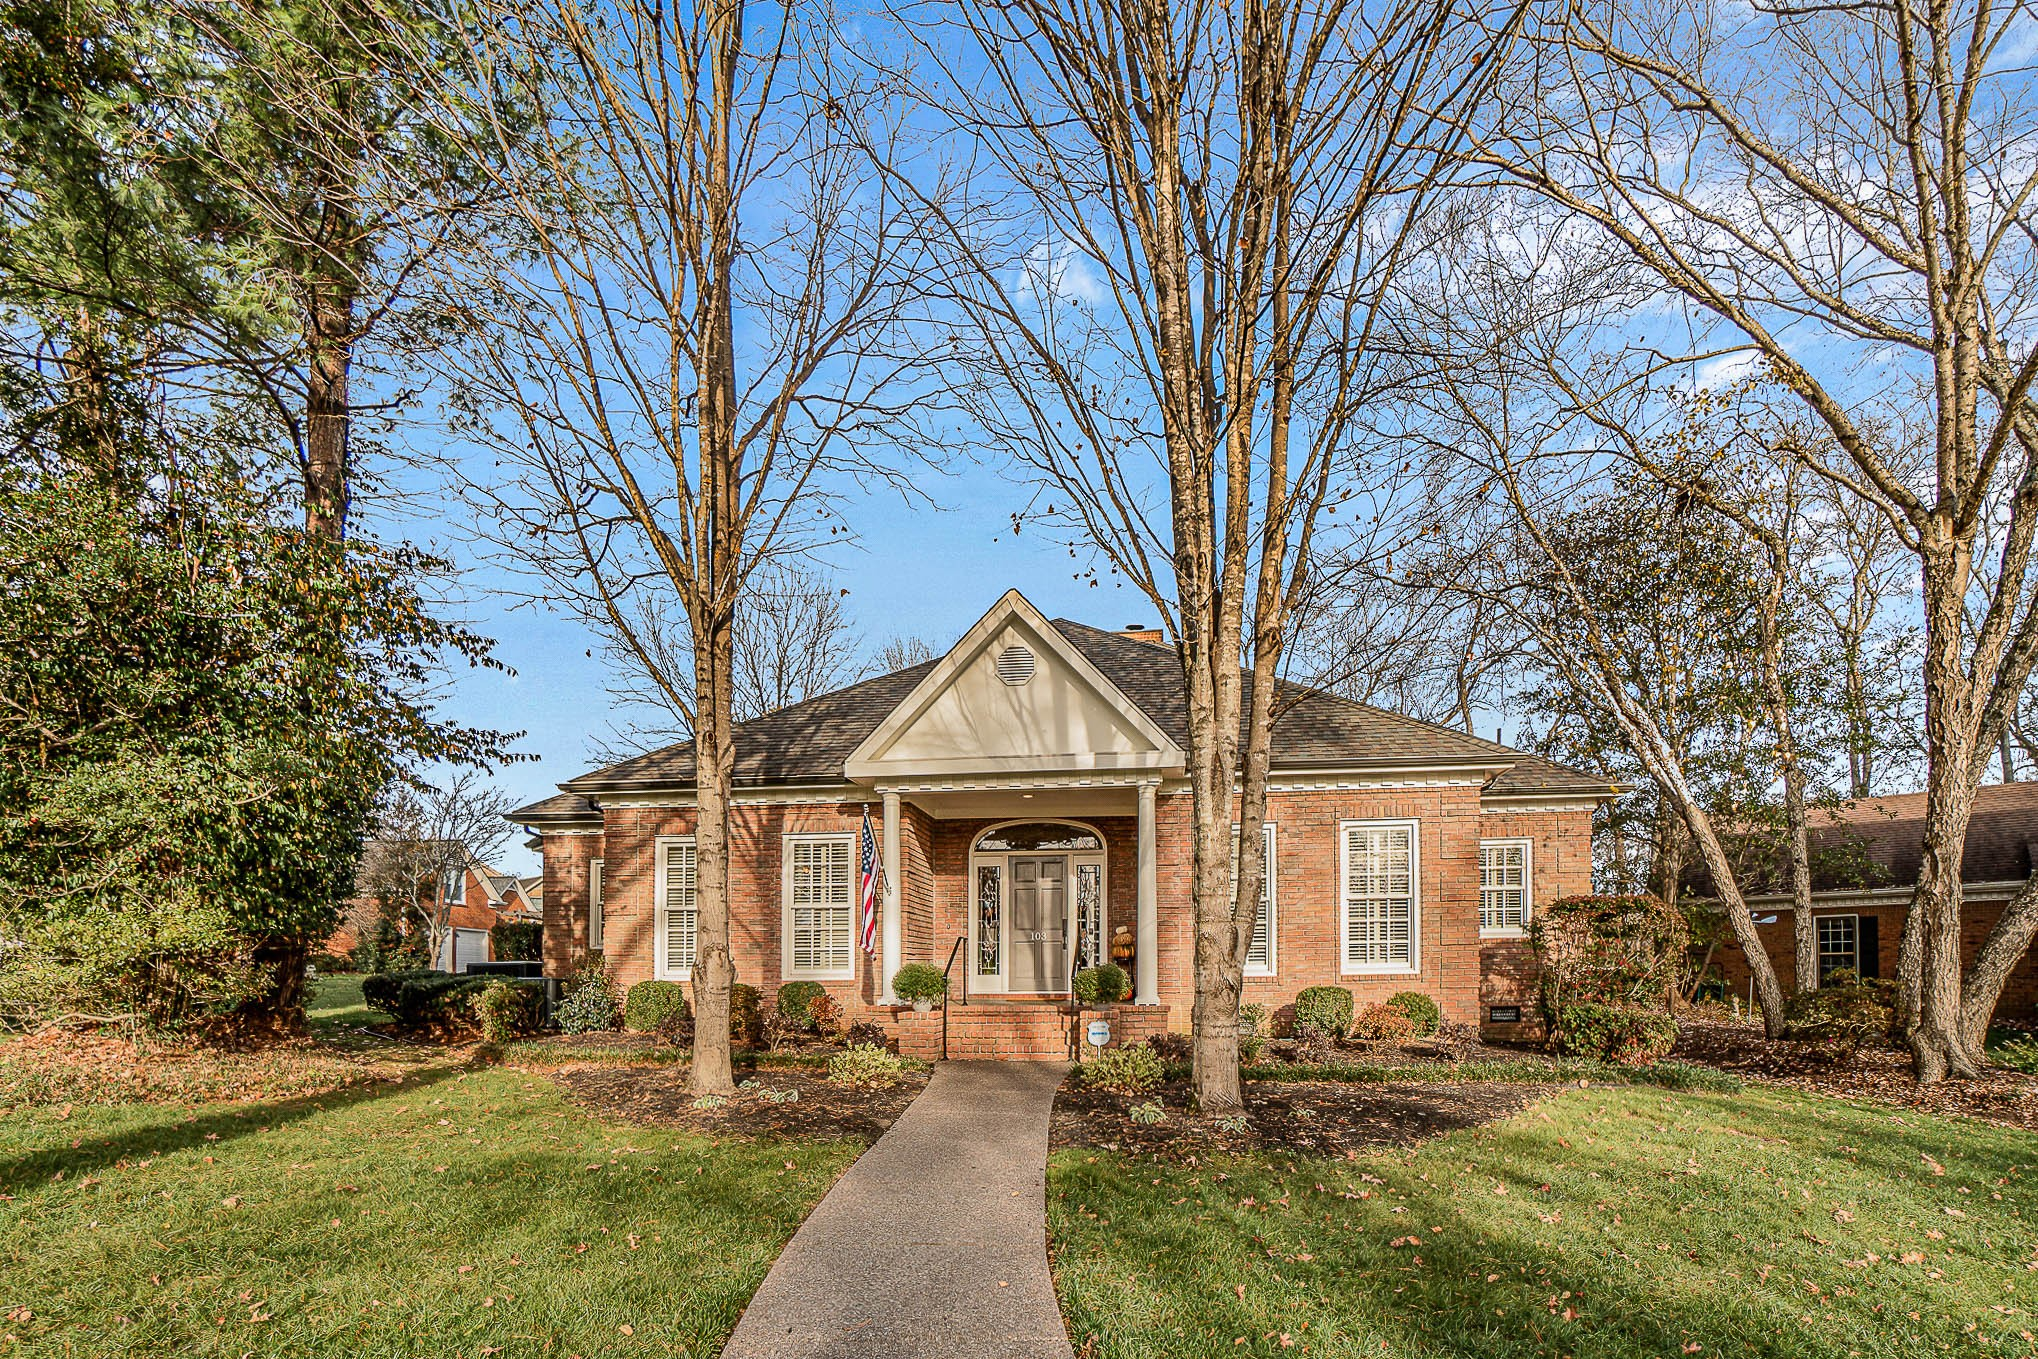 FABULOUS, updated home in one of Franklin's most desirable neighborhoods~Main level master & guest bedrooms~All bathrooms gutted/updated~2 spacious secondary bedrooms on second level (1 currently used as office/rec room)~Great storage~New gas water heater~Anderson windows~Plantation shutters on most windows~HVACs replaced 7 & 8 yrs ago~Roof replaced 7 yrs ago~Exterior recently painted~Rear-entry garage w/new insulated door~Covered rear porch (17'x10')~Lovely, private patio~Adjoins farm property